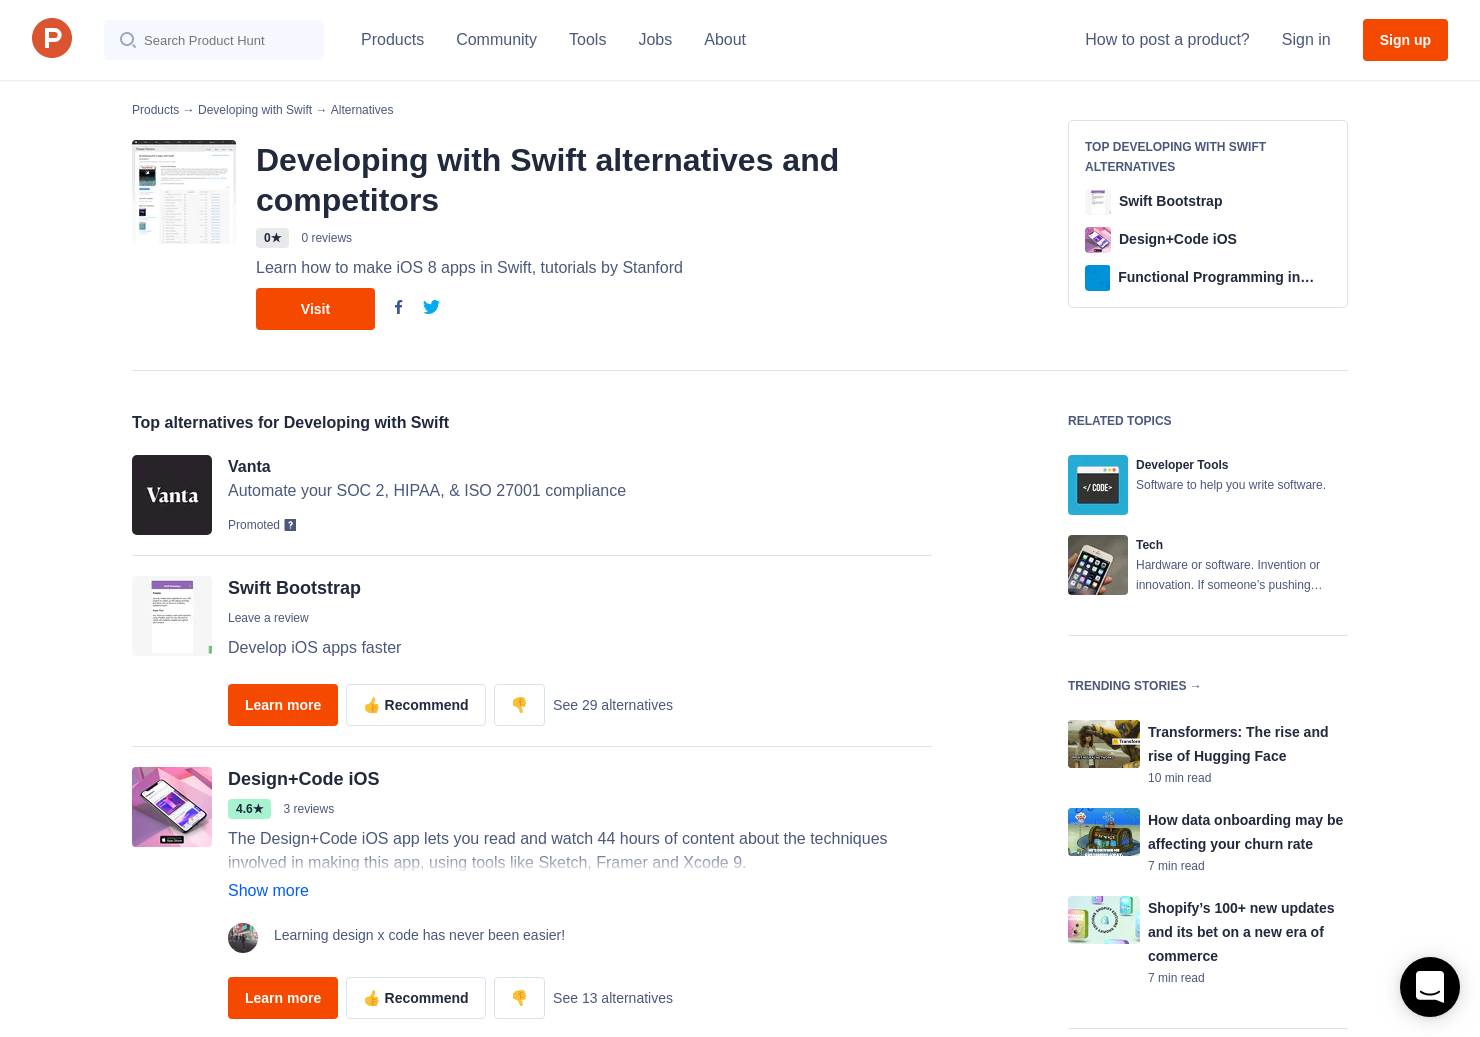 6 Alternatives to Developing with Swift | Product Hunt